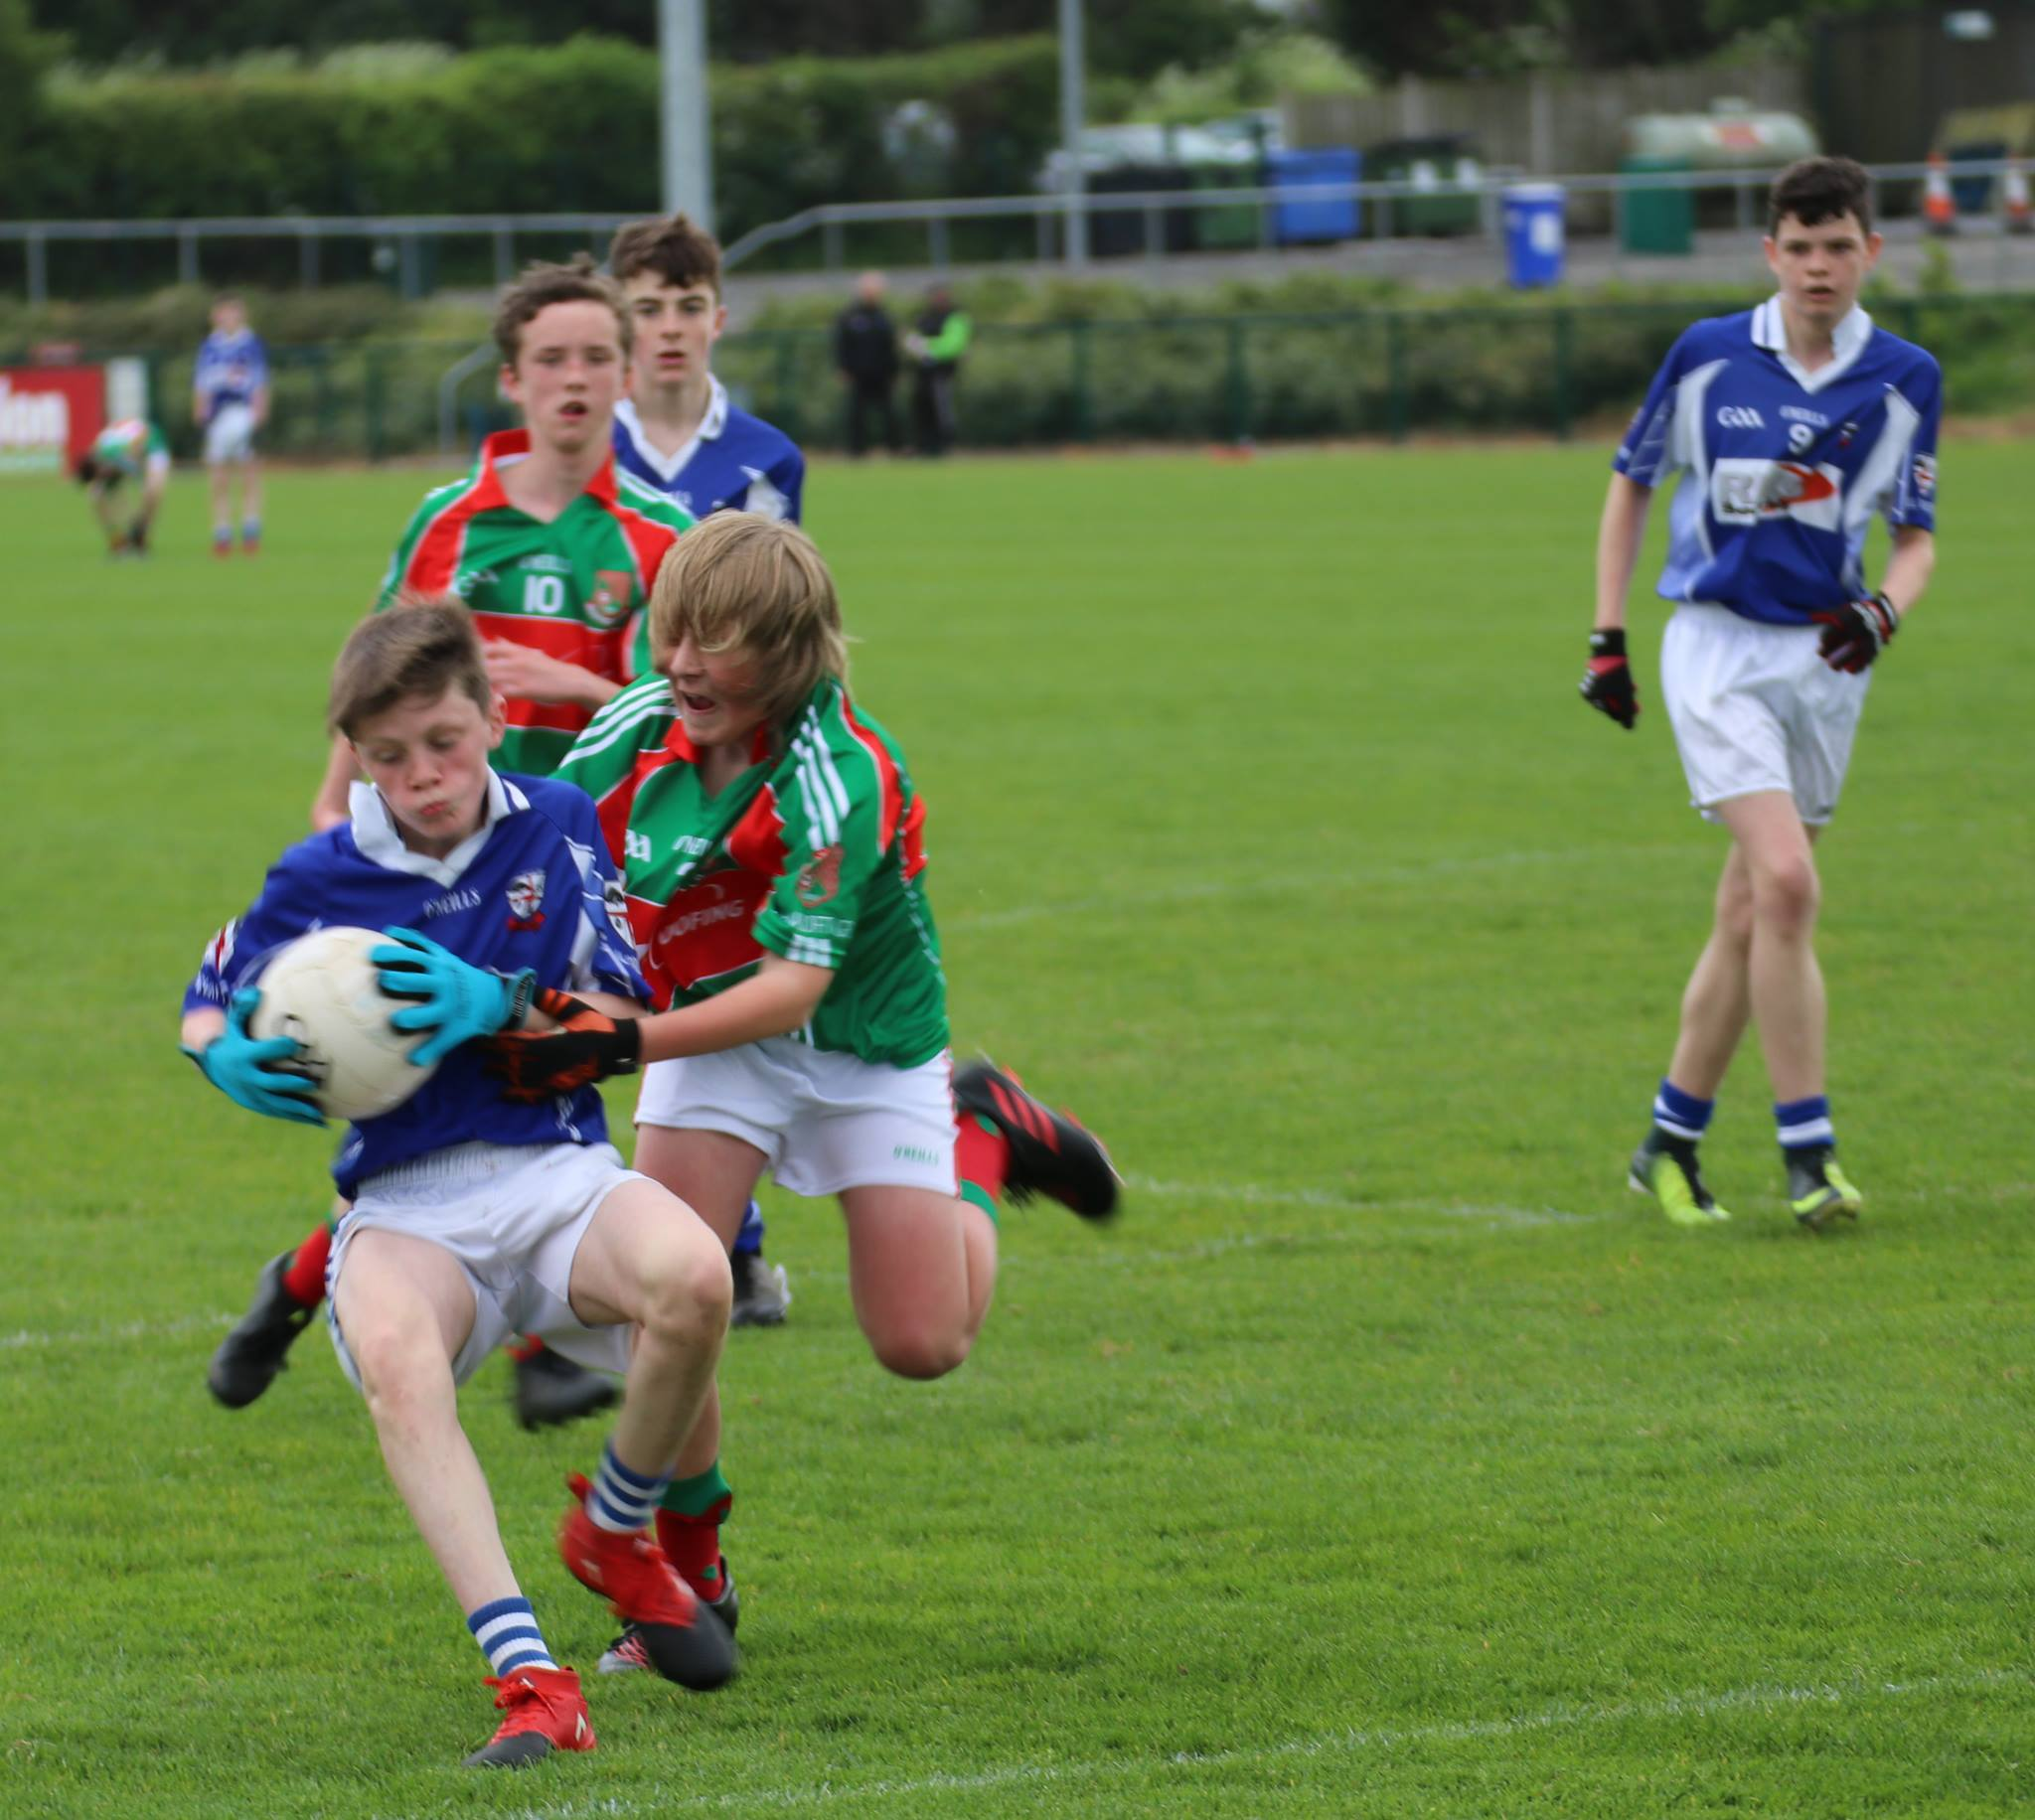 Suncroft v Celbridge Feile A Shield 15